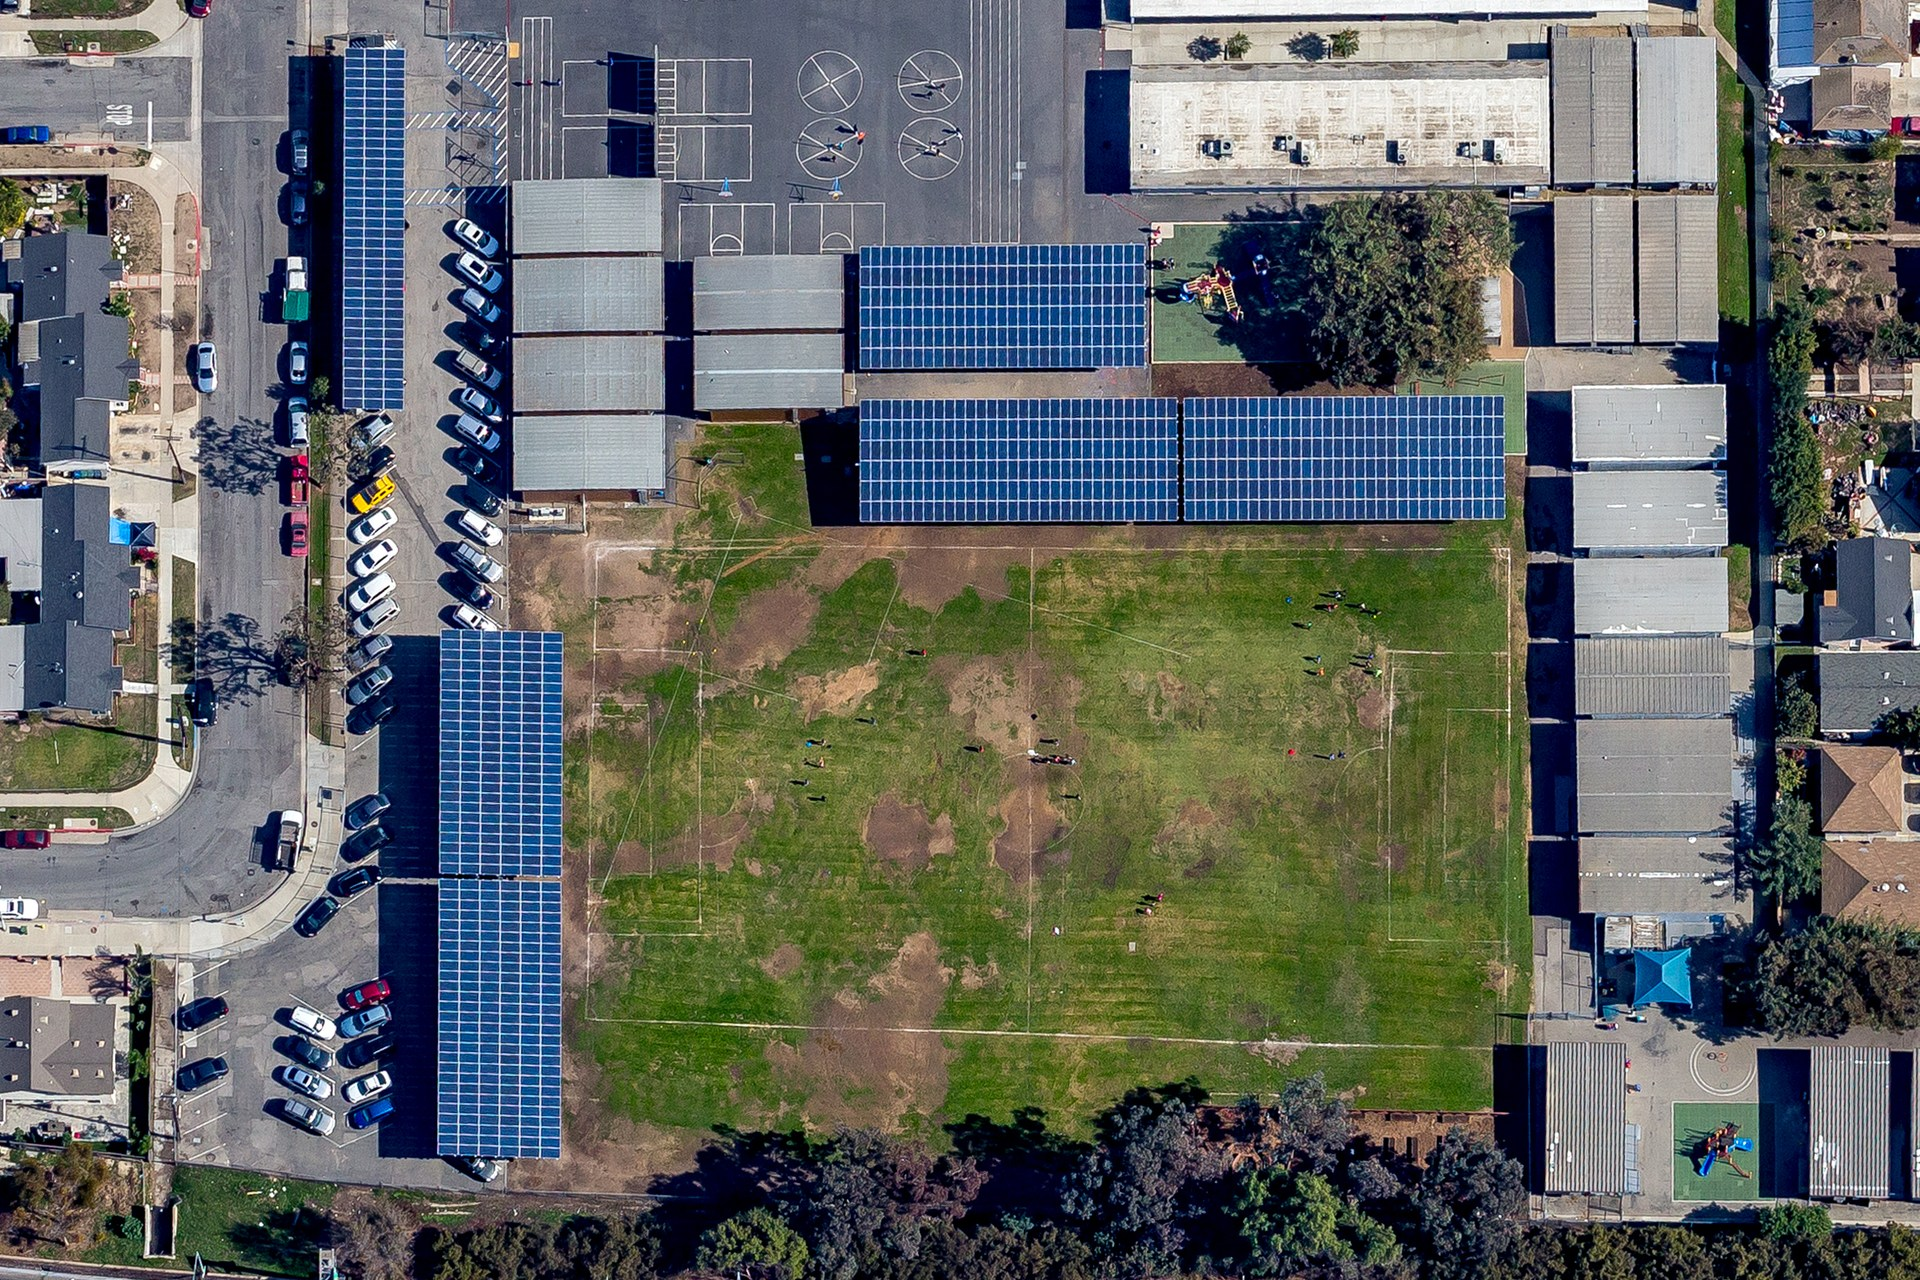 second overhead view of Felton Elementary with solar panels